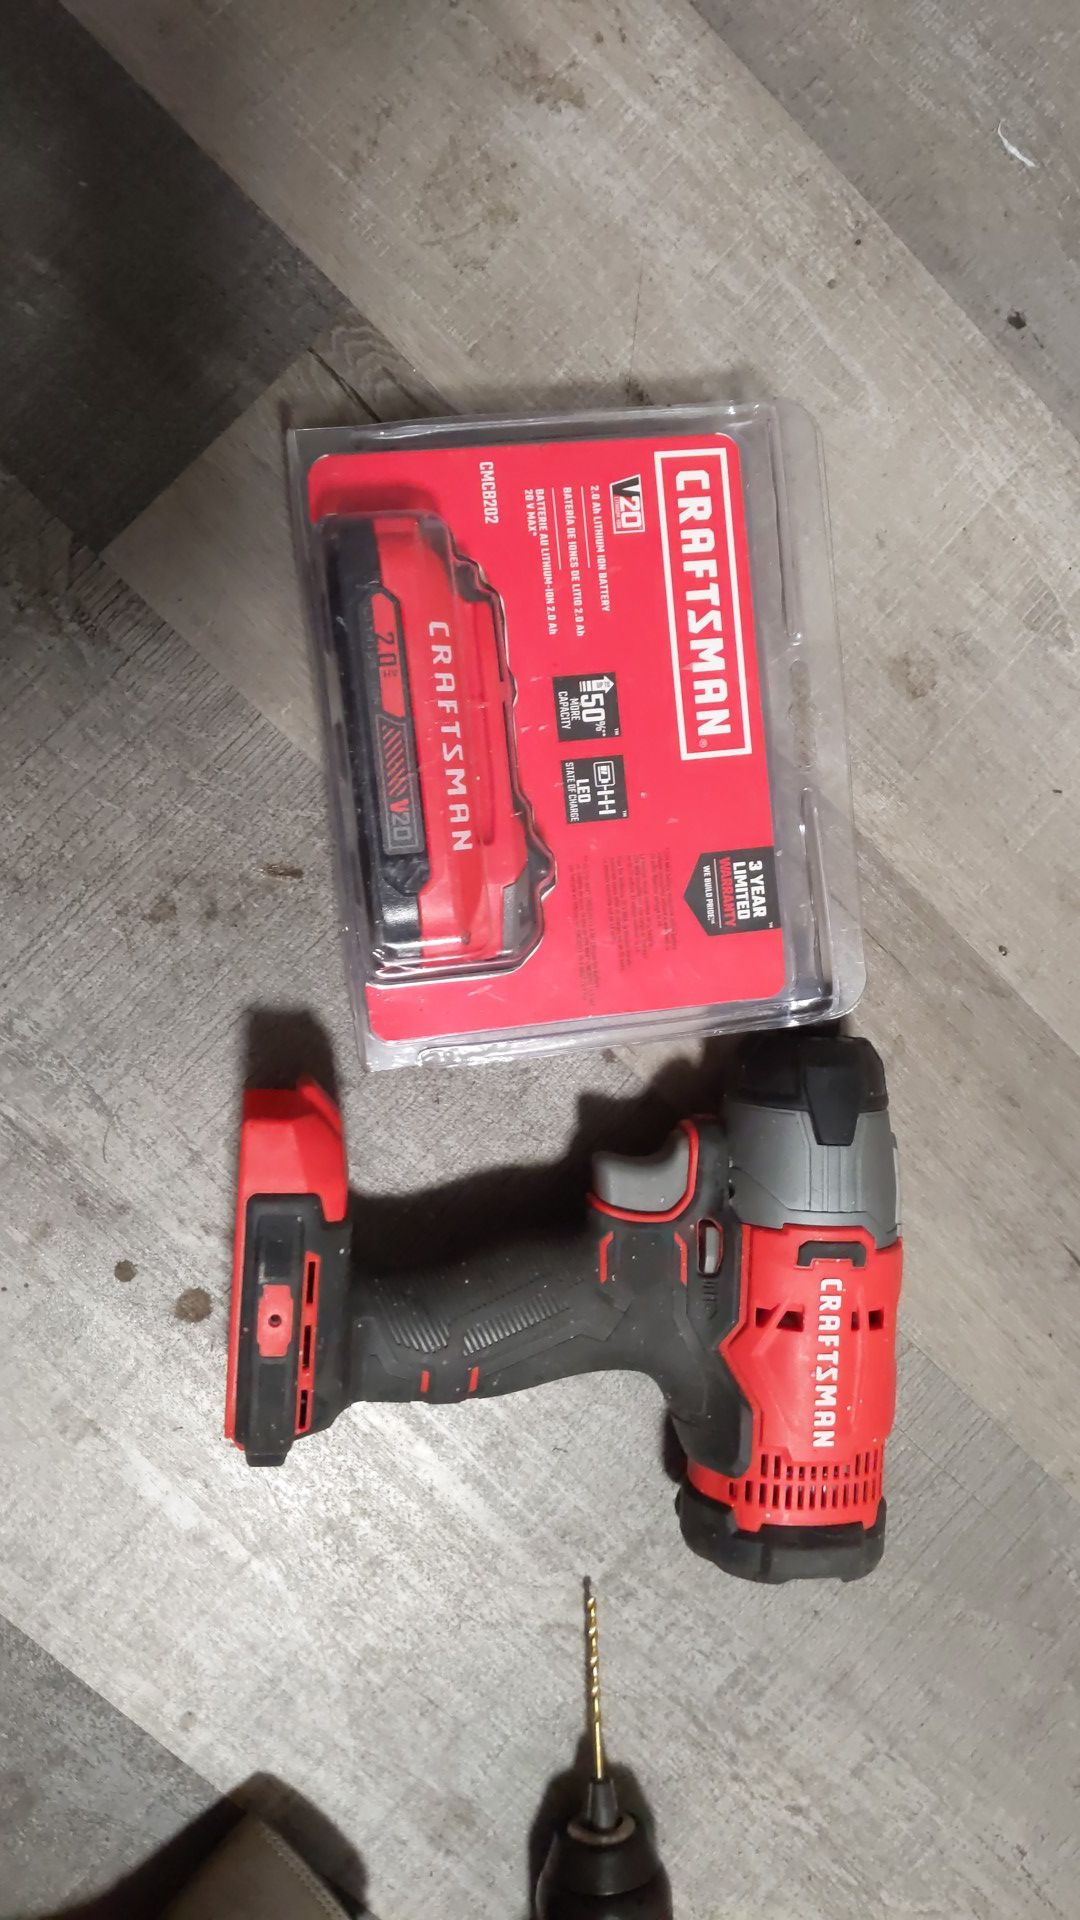 Craftsman impact driver like new with new battery